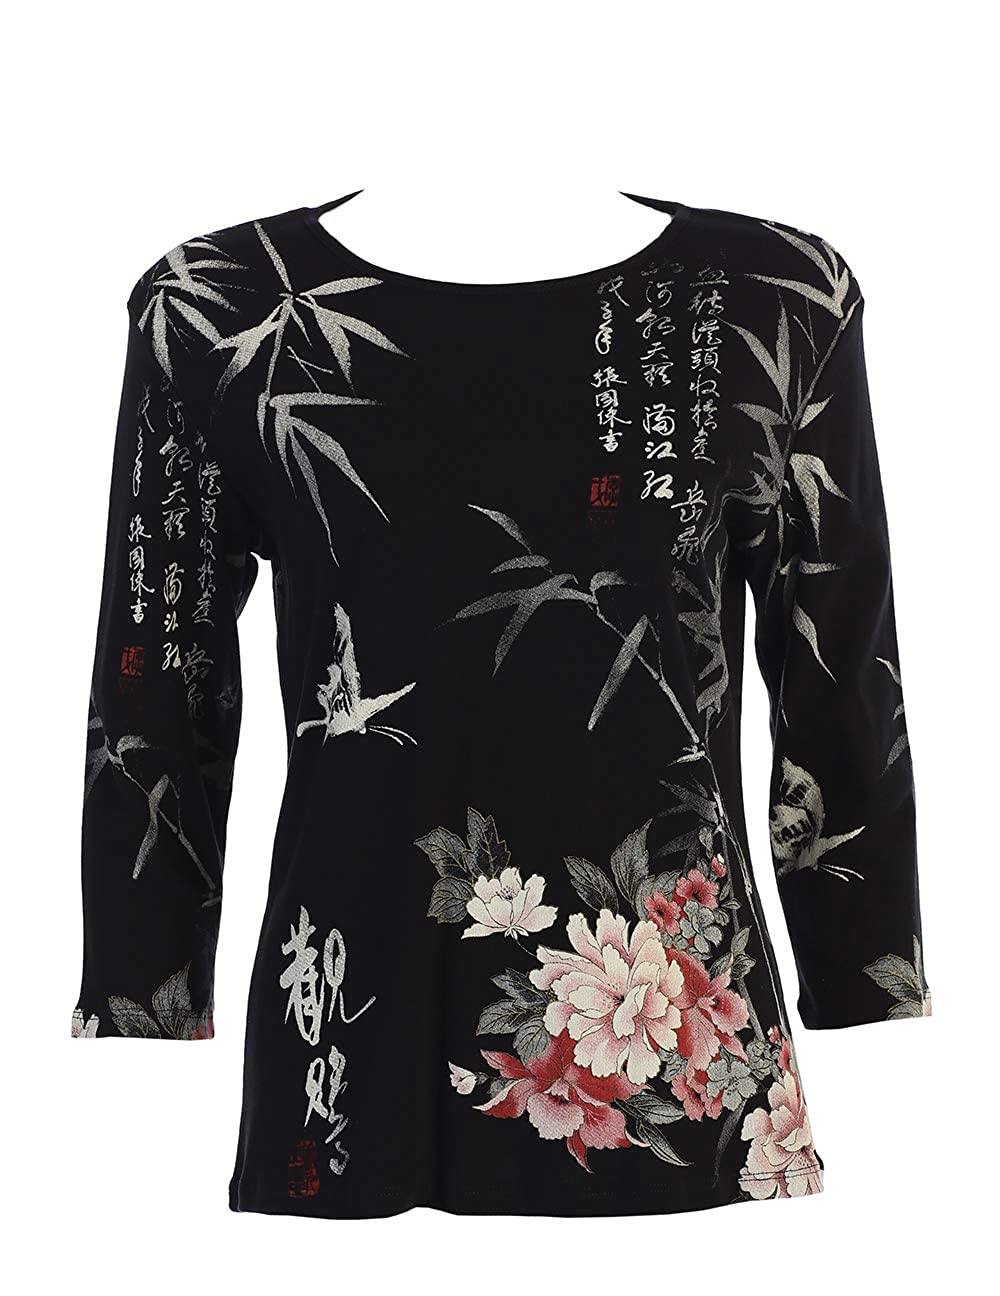 Jess & Jane Calligraphy & Floral Print Cotton Top in Black Multi  141192